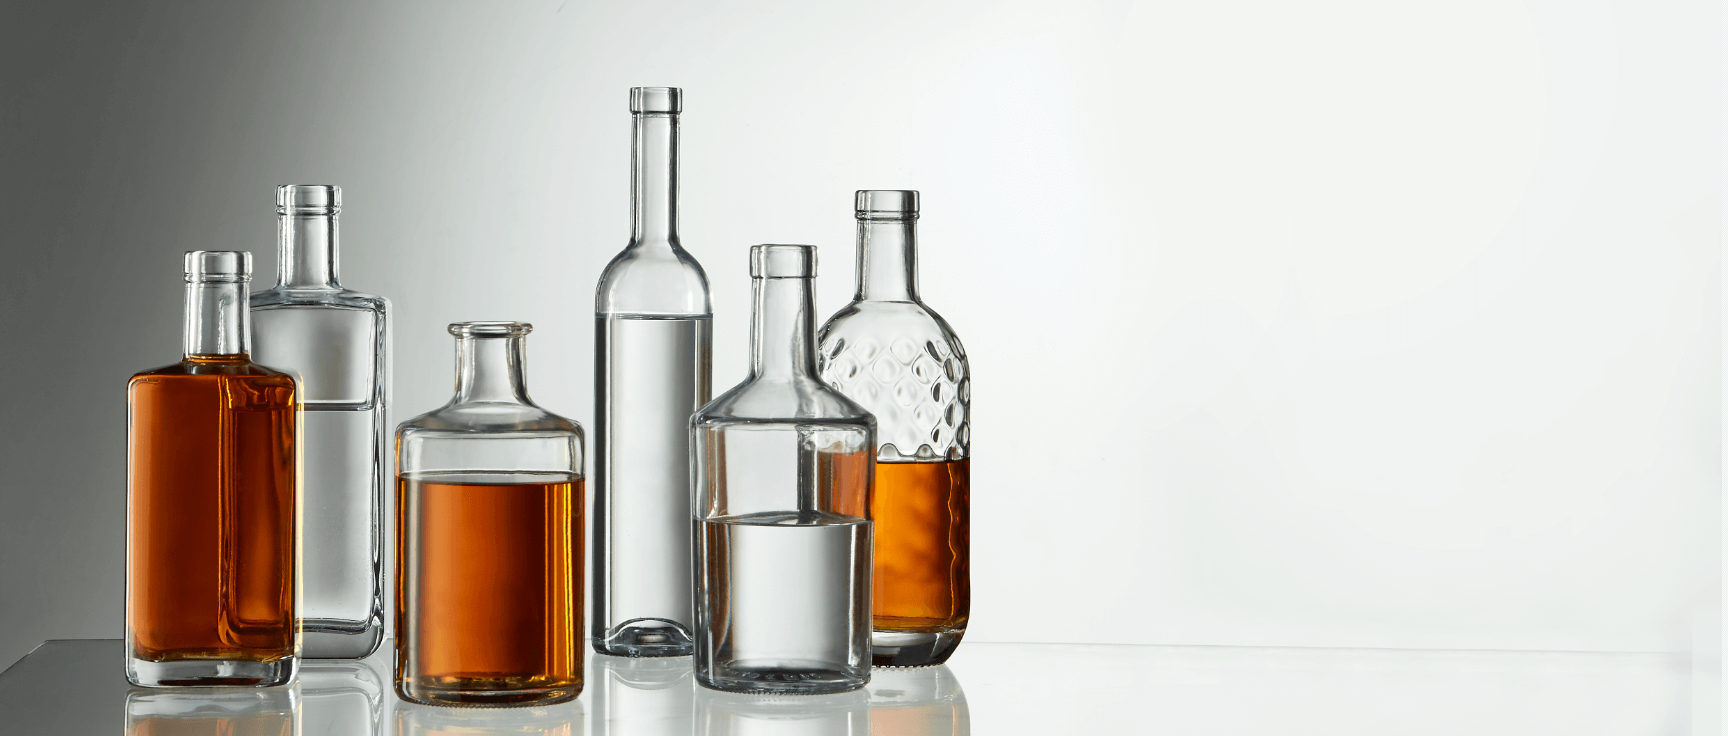 The brand Selective Line, who are we ? The high-end glass bottle